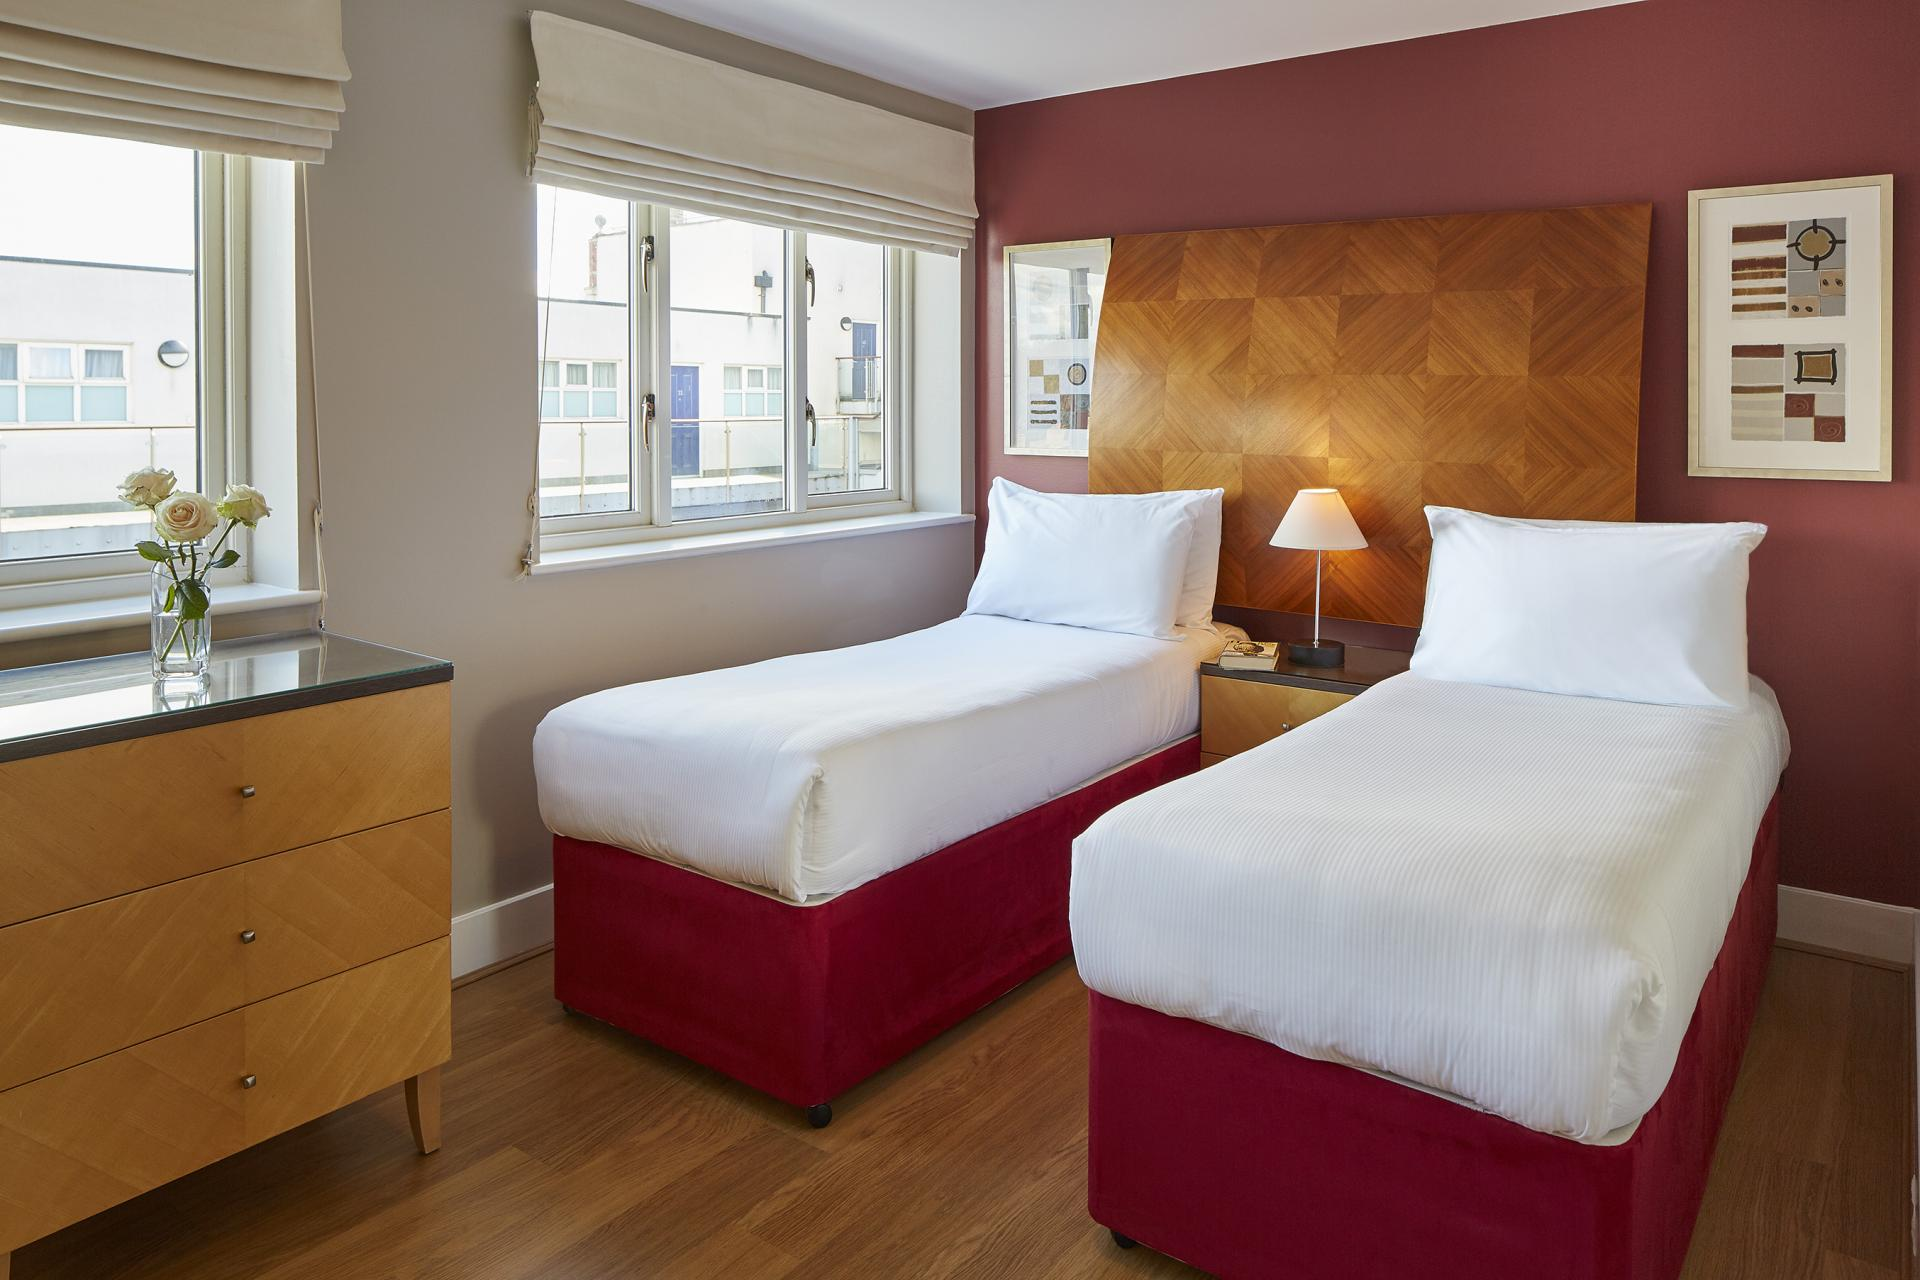 Twin beds at Limehouse Apartments, Limehouse, London - Citybase Apartments